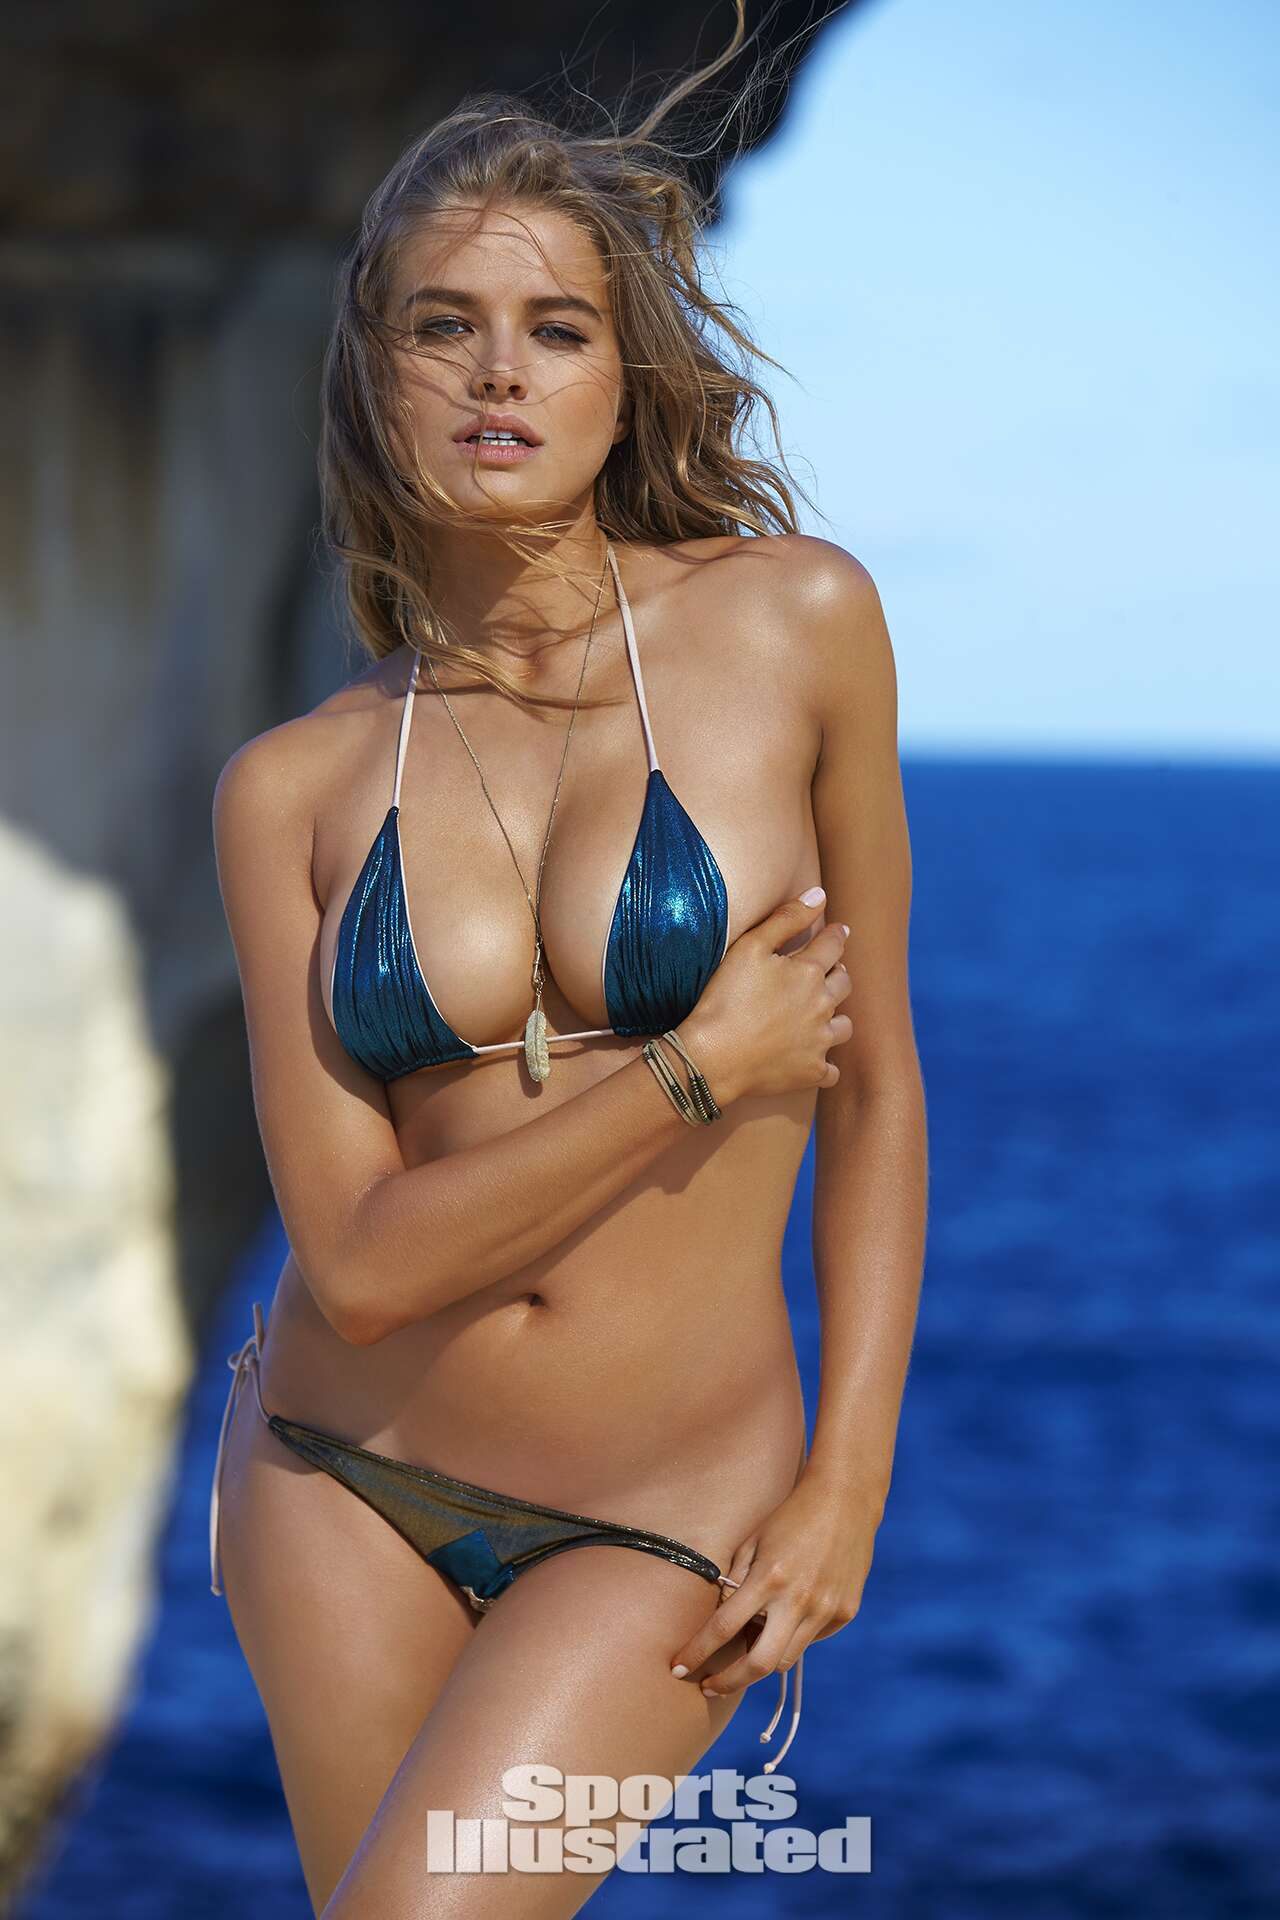 Tanya Mityushina was photographed by Ben Watts in Malta. Swimsuit by Cali Dreaming.